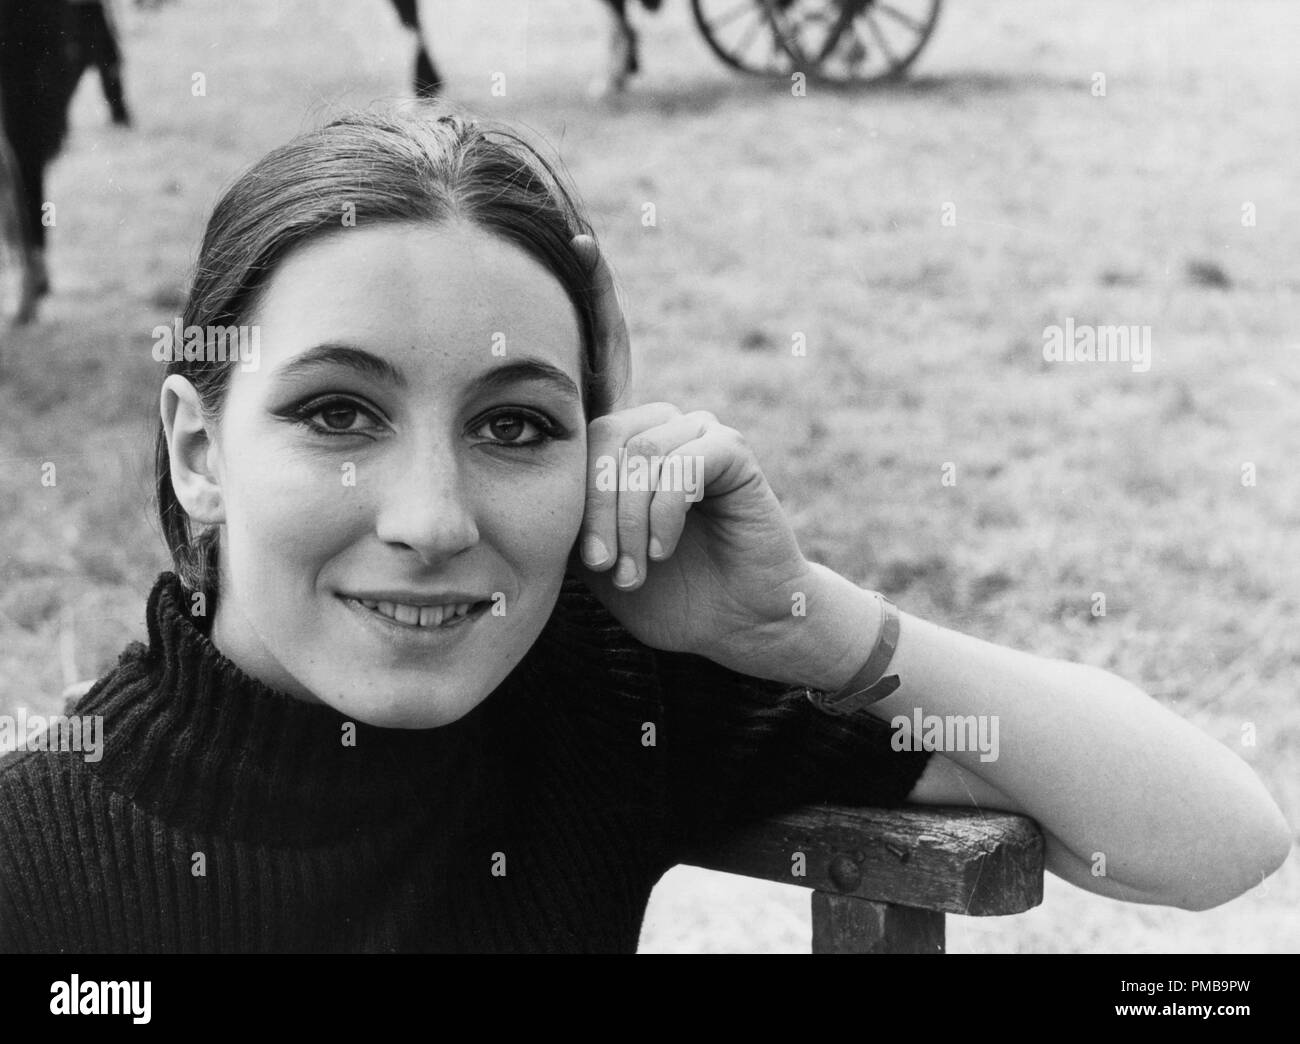 Anjelica Huston in Ireland during the making of 'Sinful Davey', 1967  File Reference # 32557_930THA - Stock Image